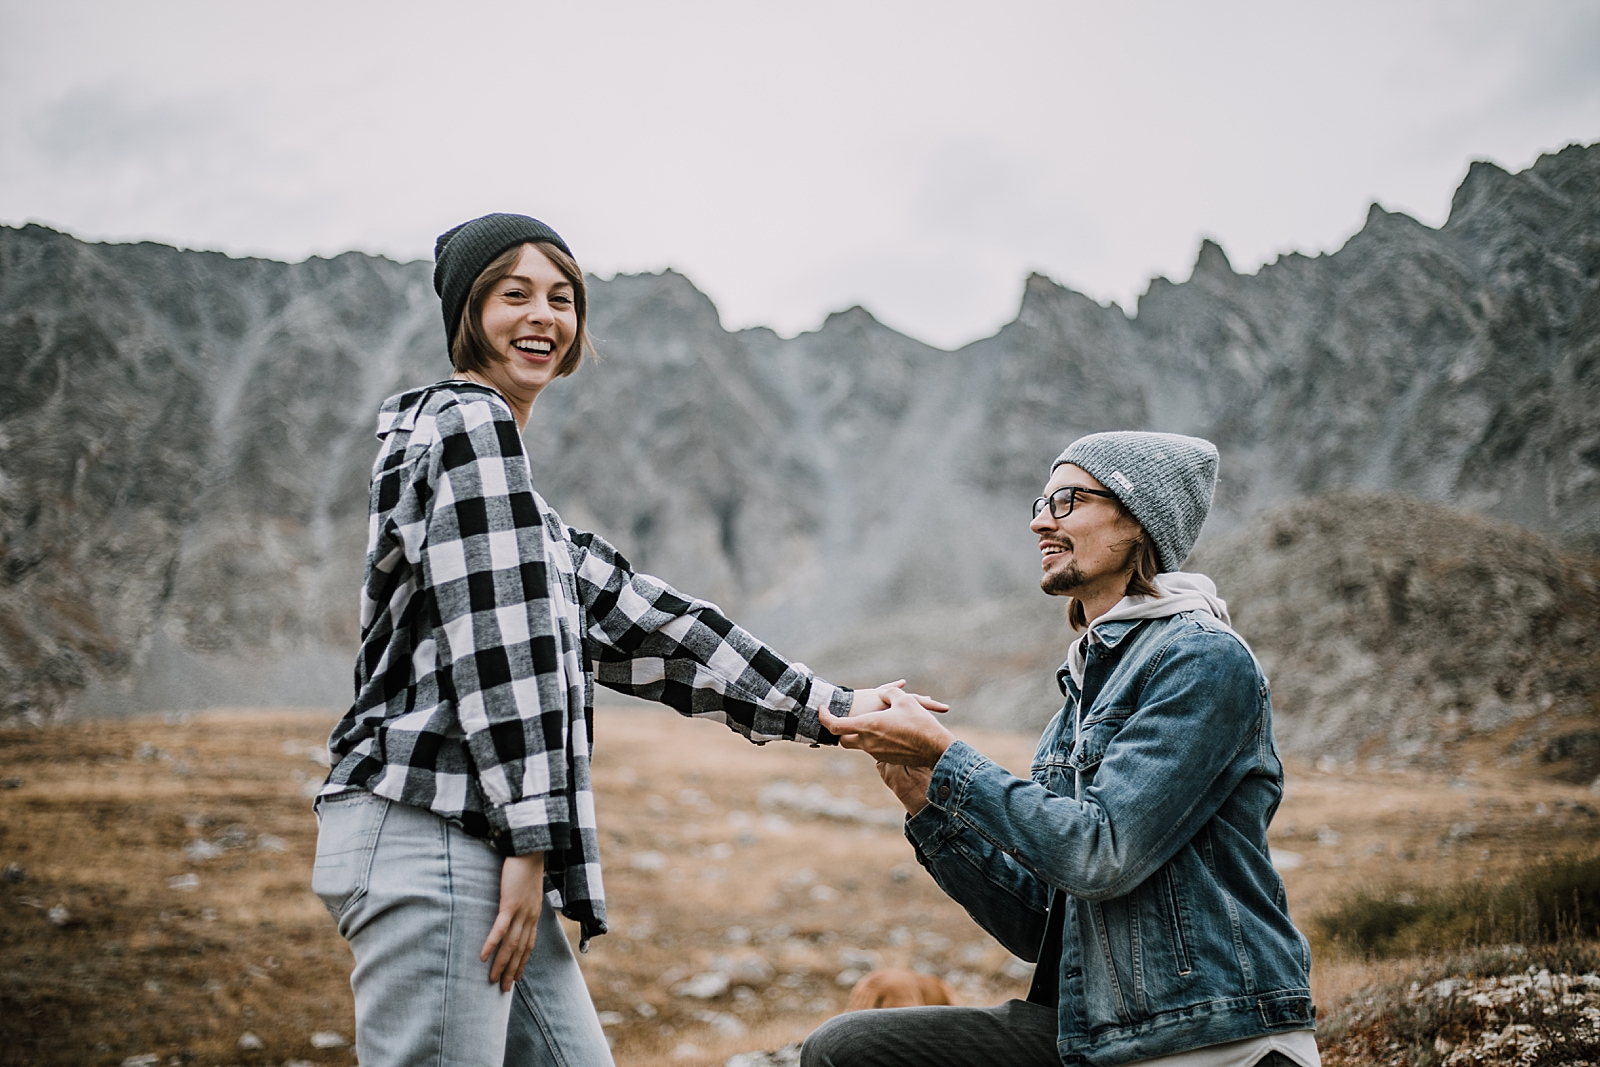 she said yes, colorado surprise proposal, hike mayflower gulch, mayflower gulch proposal, mayflower gulch elopement, mayflower gulch wedding, mayflower gulch engagments, leadville elopement